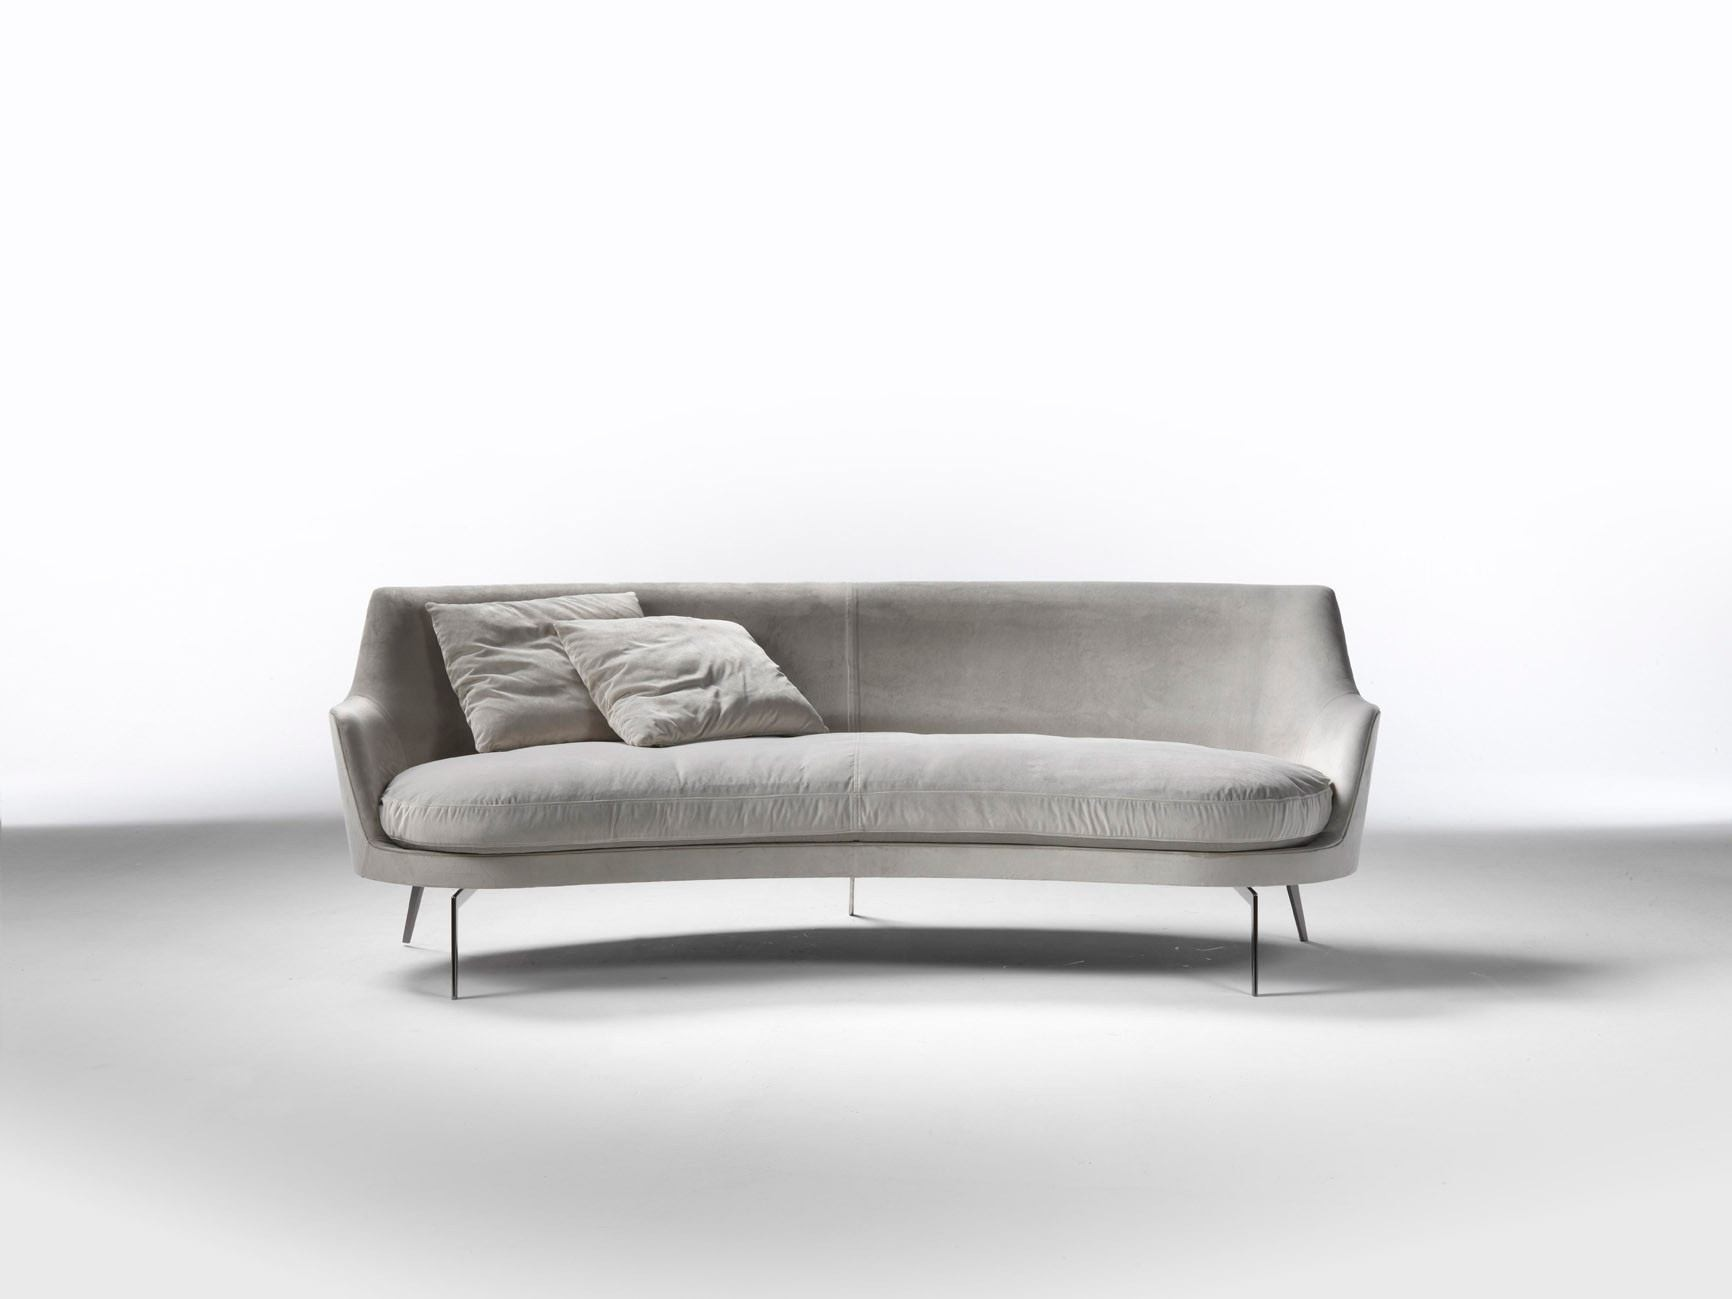 Sofa Helpdesk Flexform Guscio Sofa Deplain